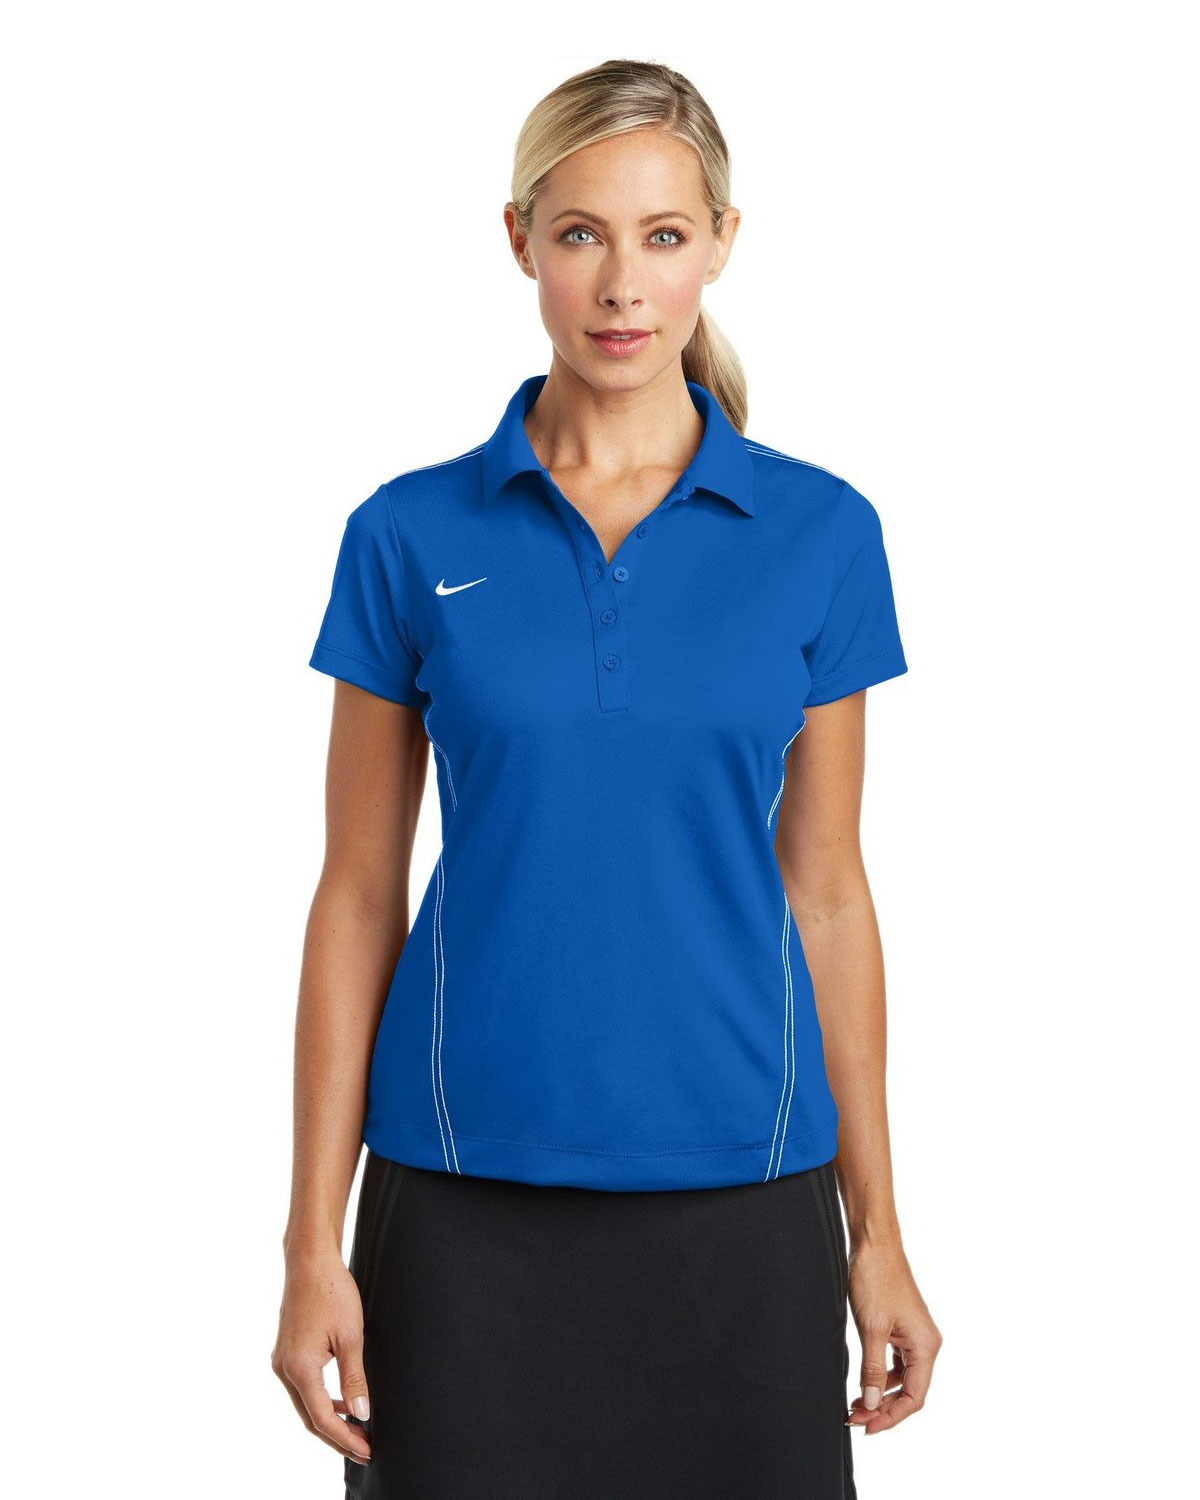 LADIES DRI-FIT SPORT SWOOSH PIQUE POLOS